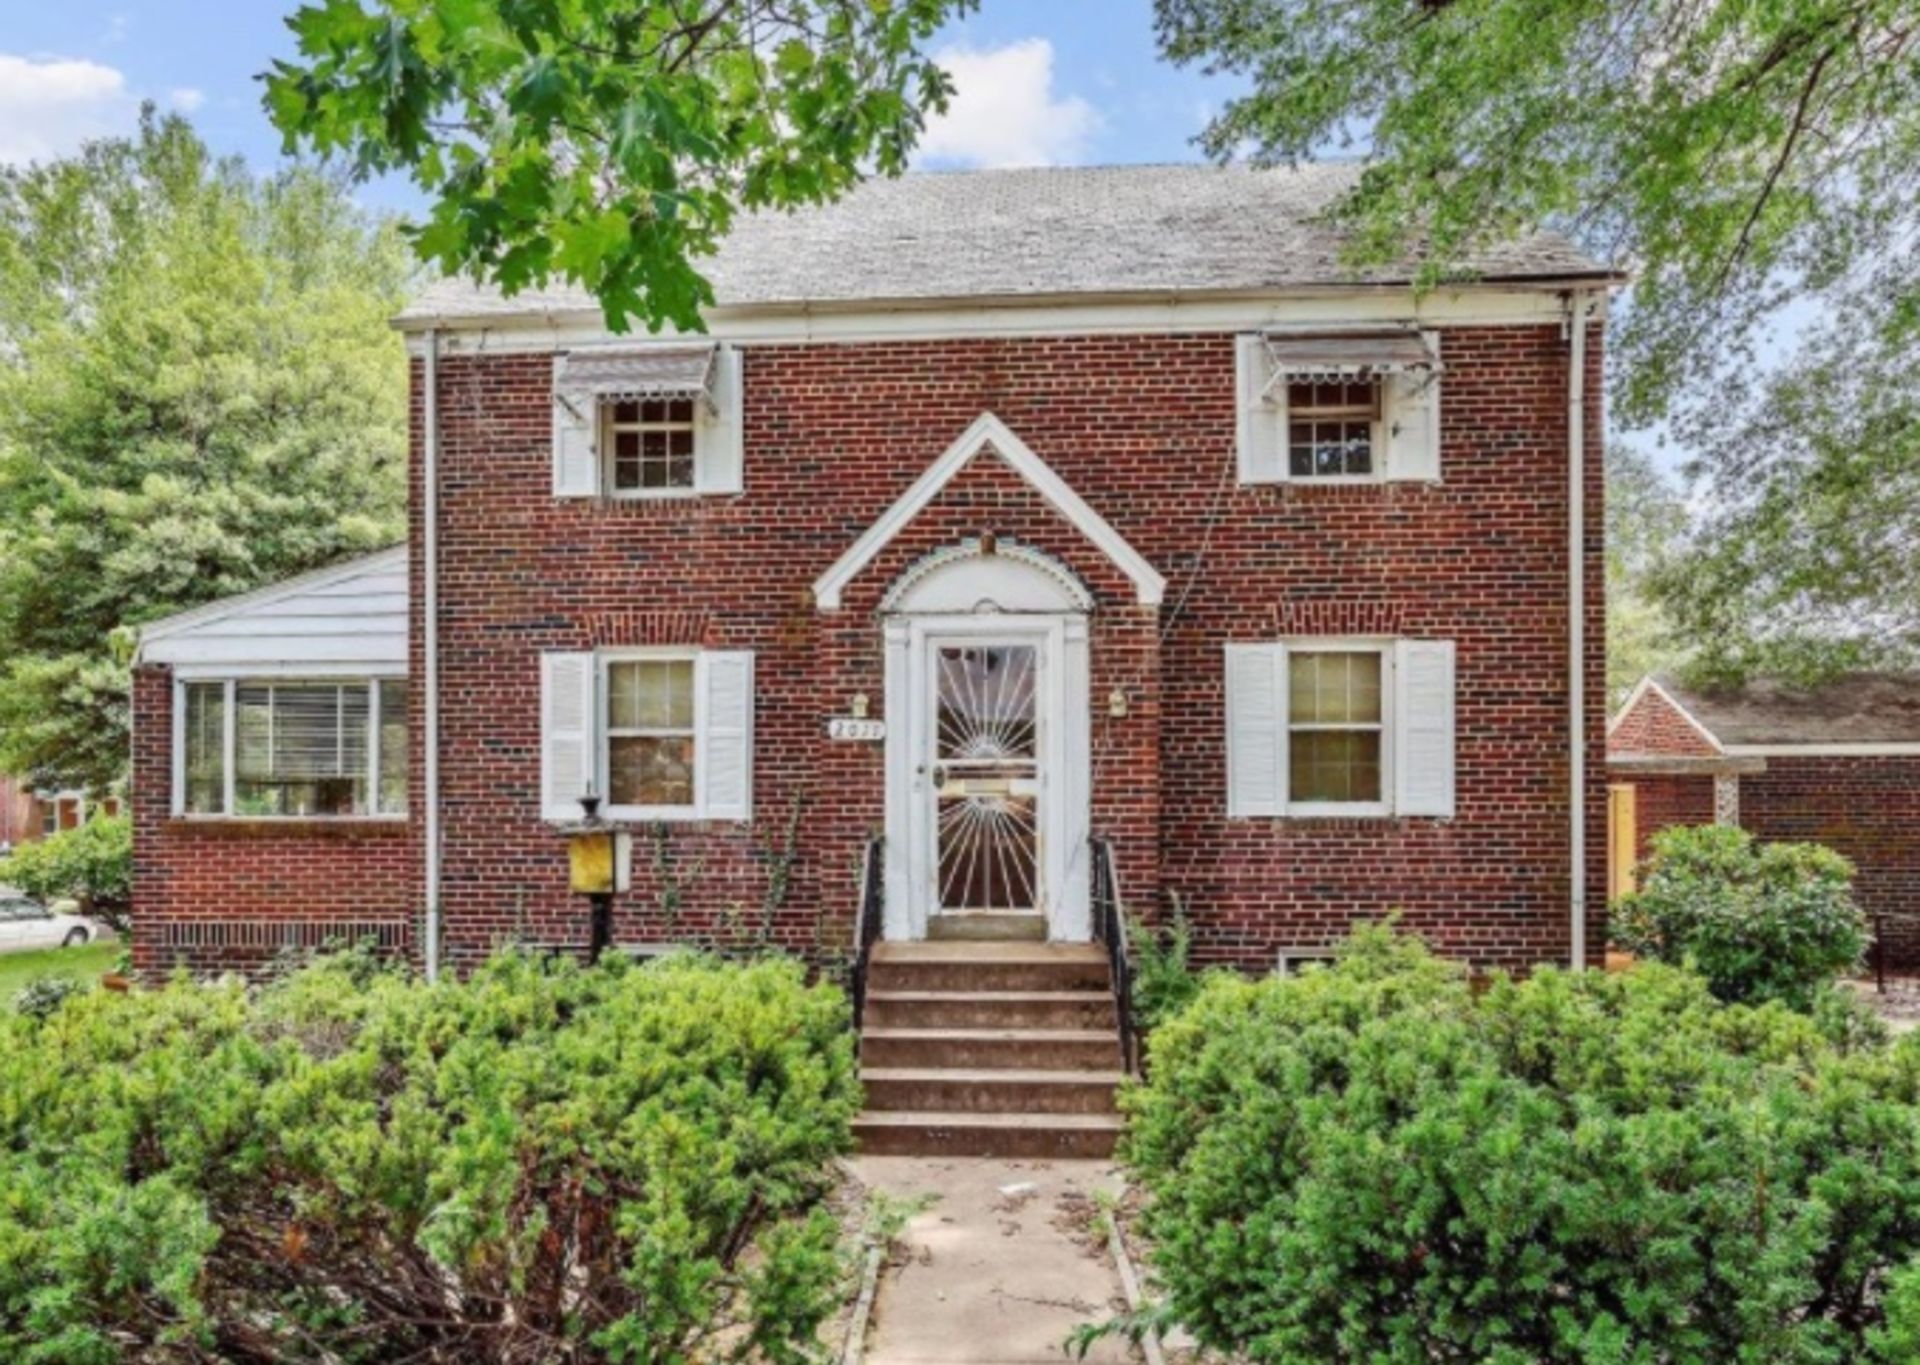 2011 Varnum St. NE – JUST SOLD AND COMING SOON